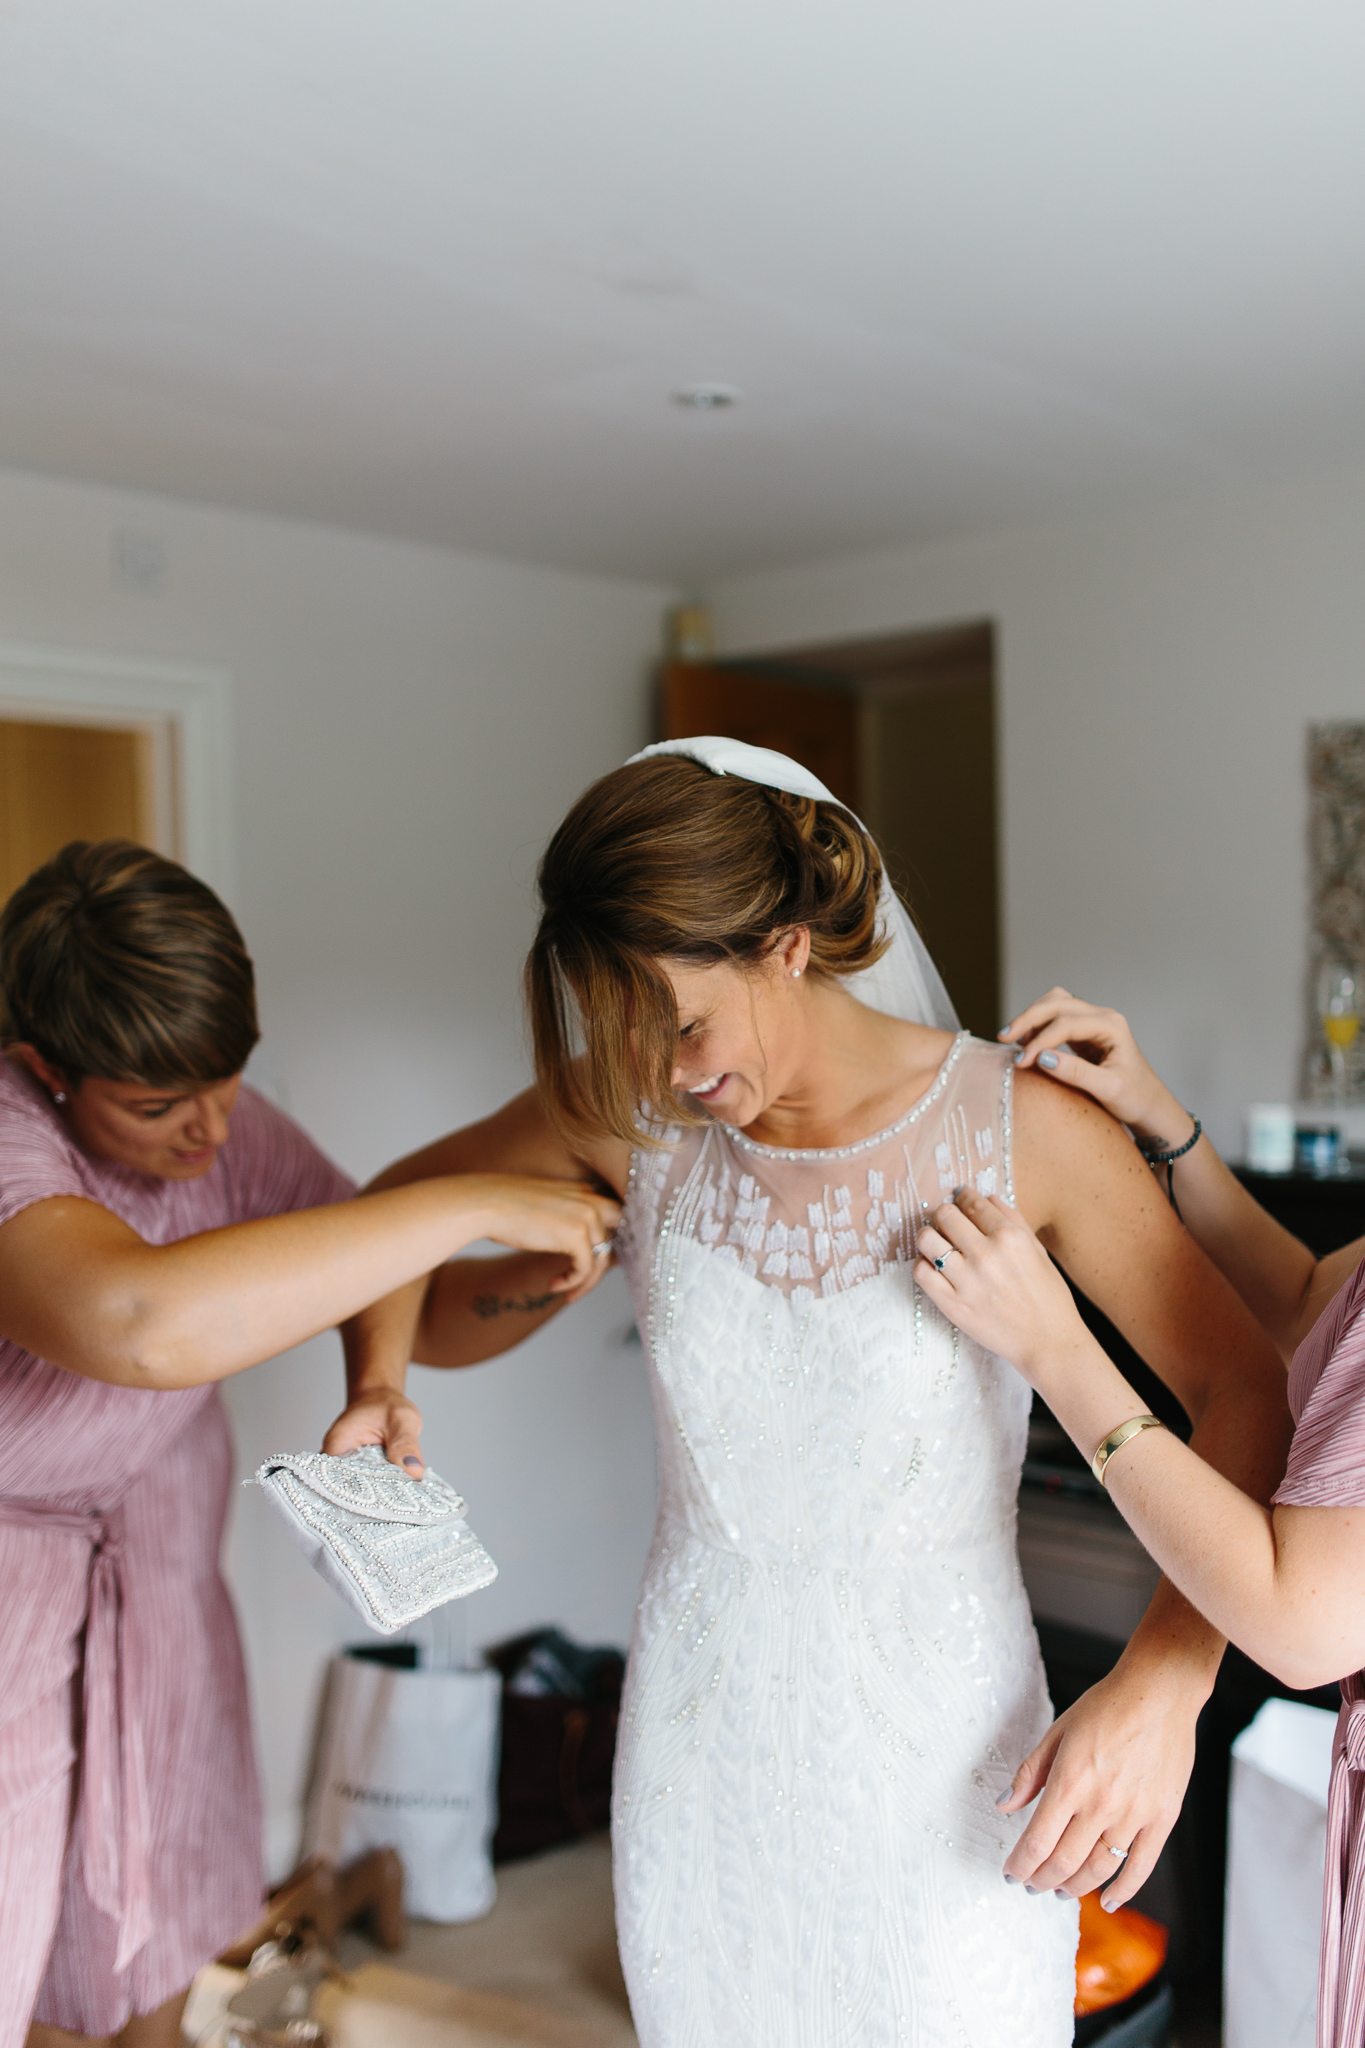 getting into the gown